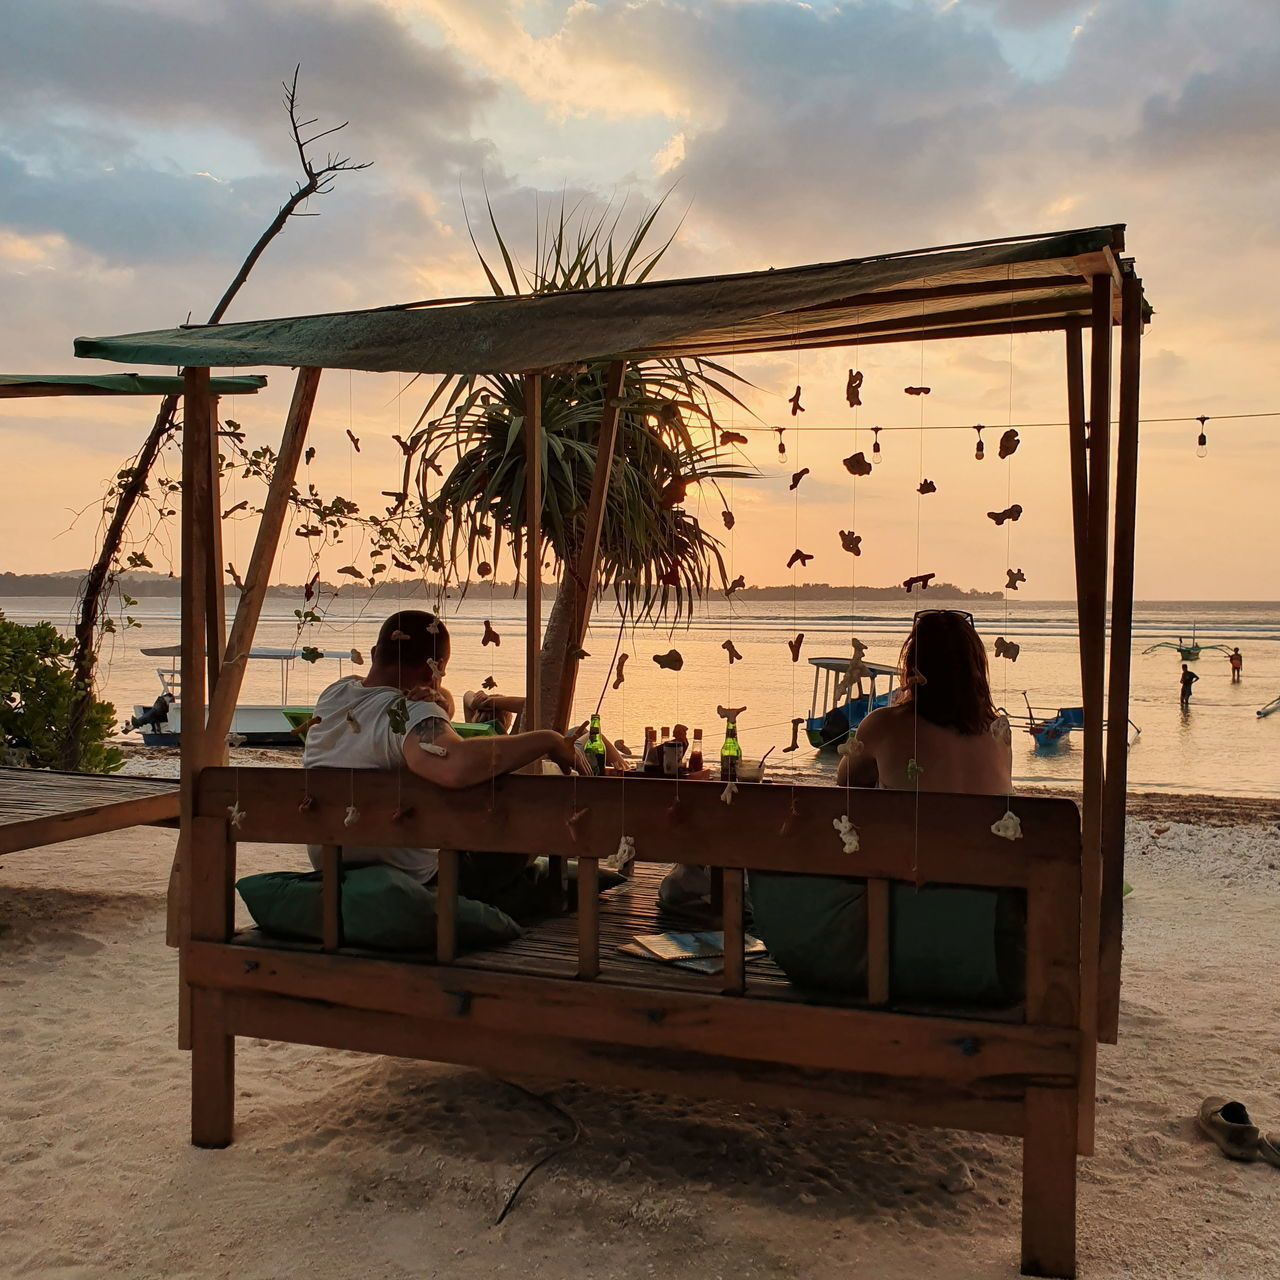 PEOPLE SITTING AT BEACH DURING SUNSET